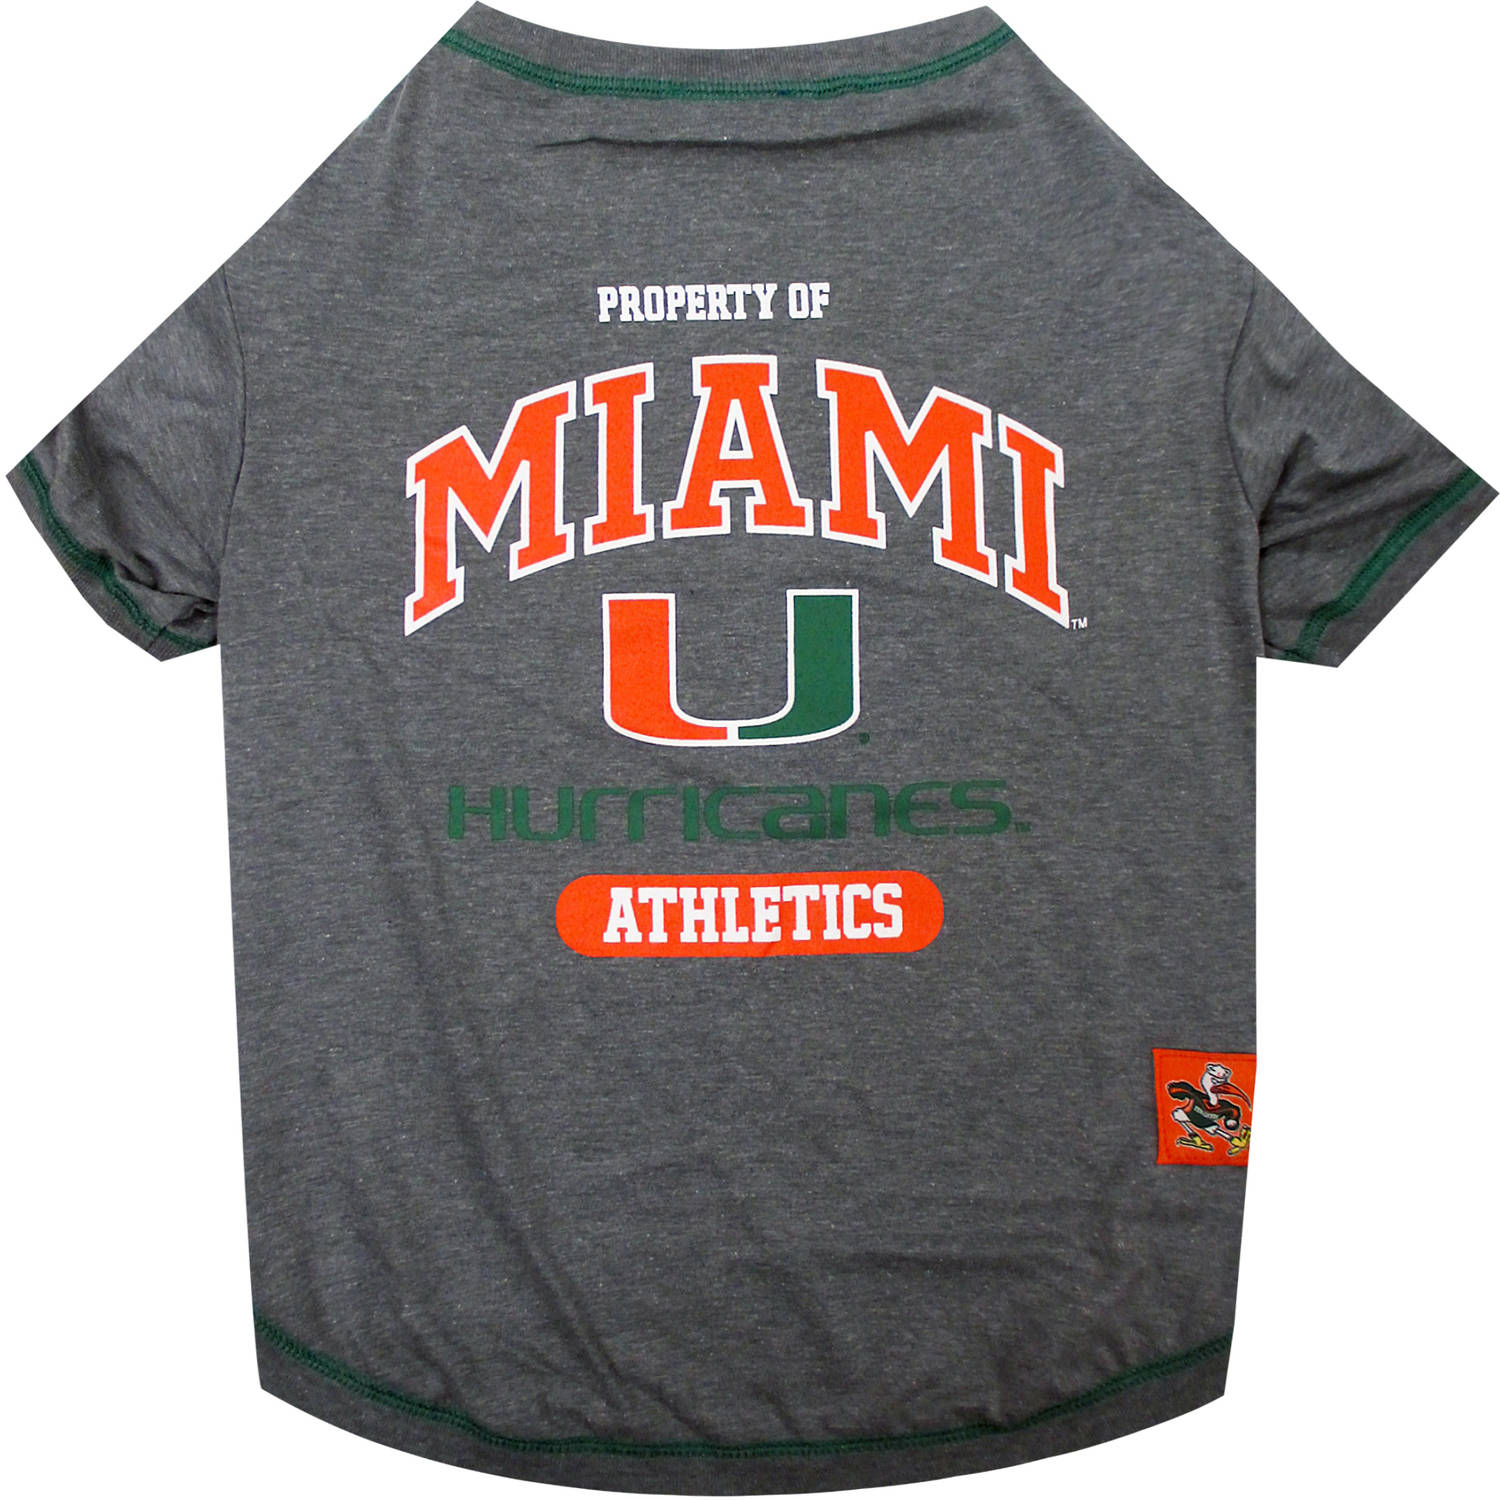 Pets First Collegiate Miami Hurricanes University Pet T-shirt, Assorted Sizes